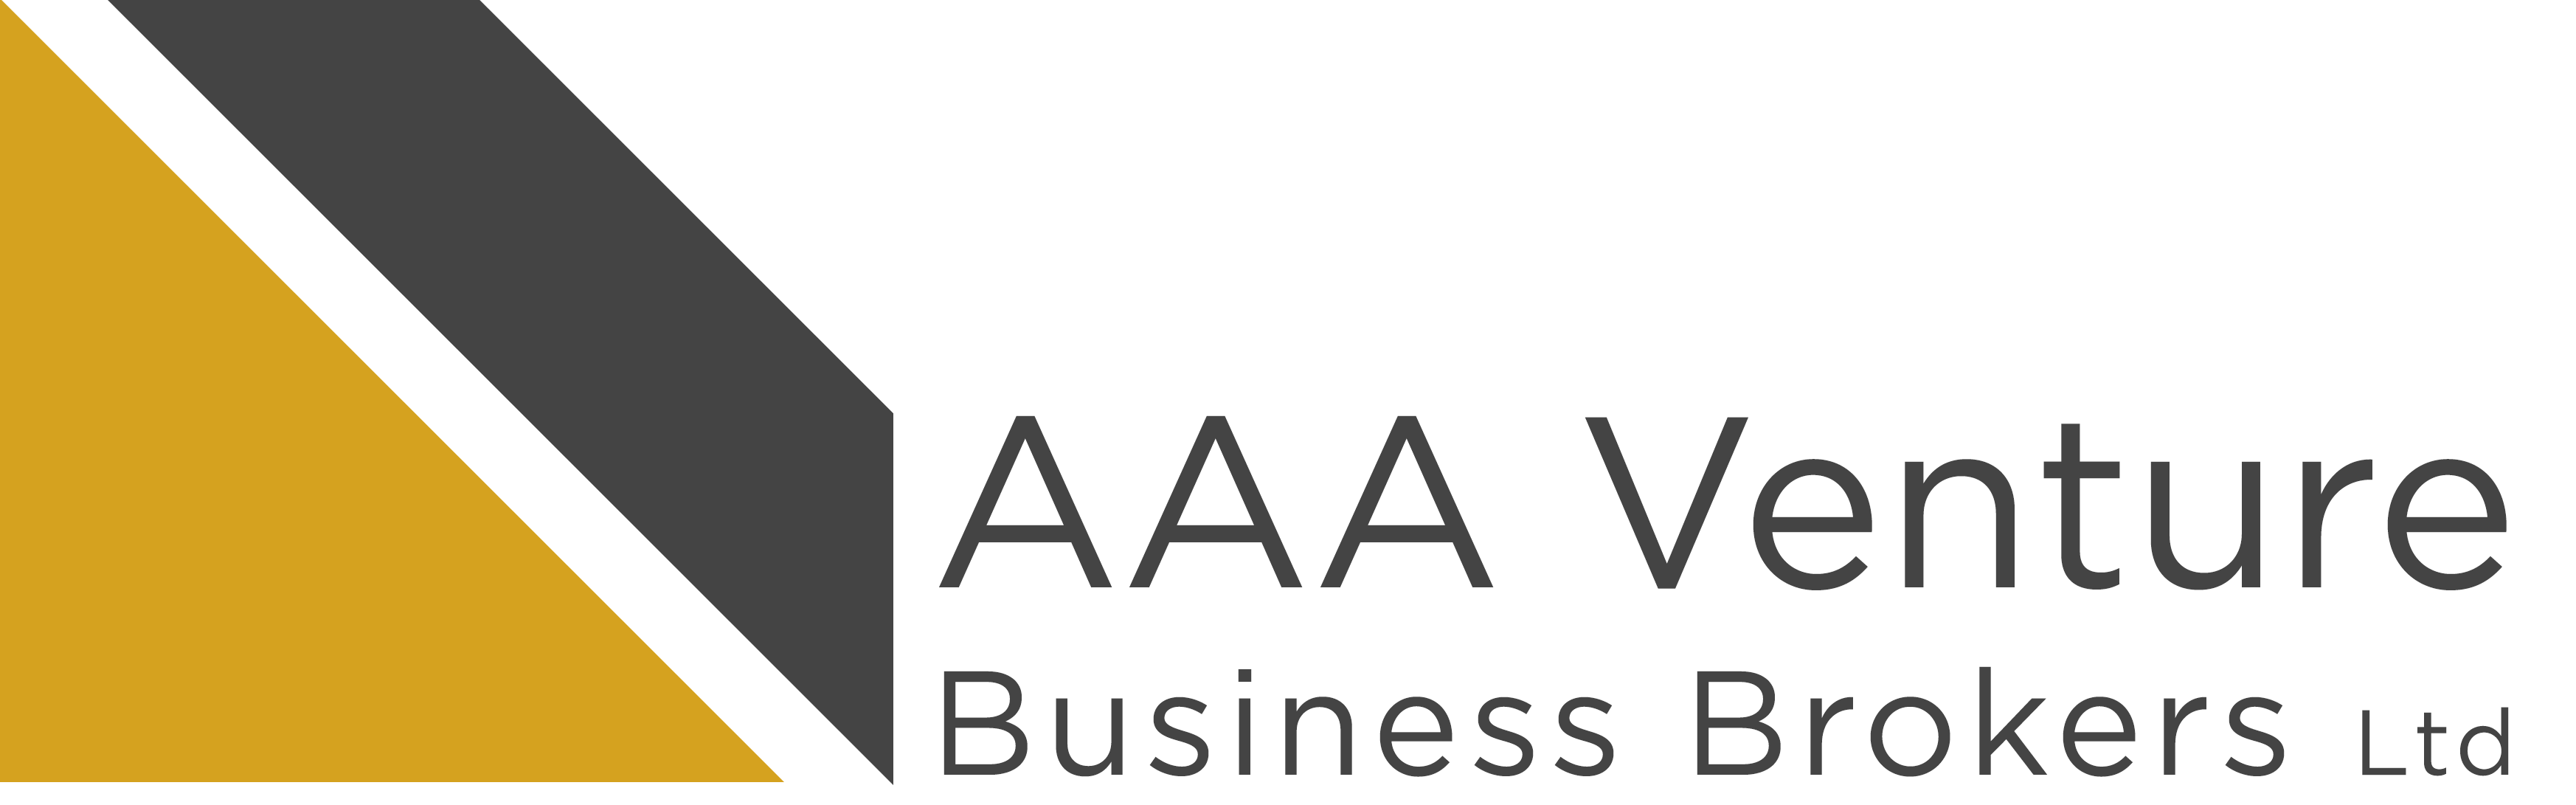 AAA Venture Business Brokers Ltd. Logo